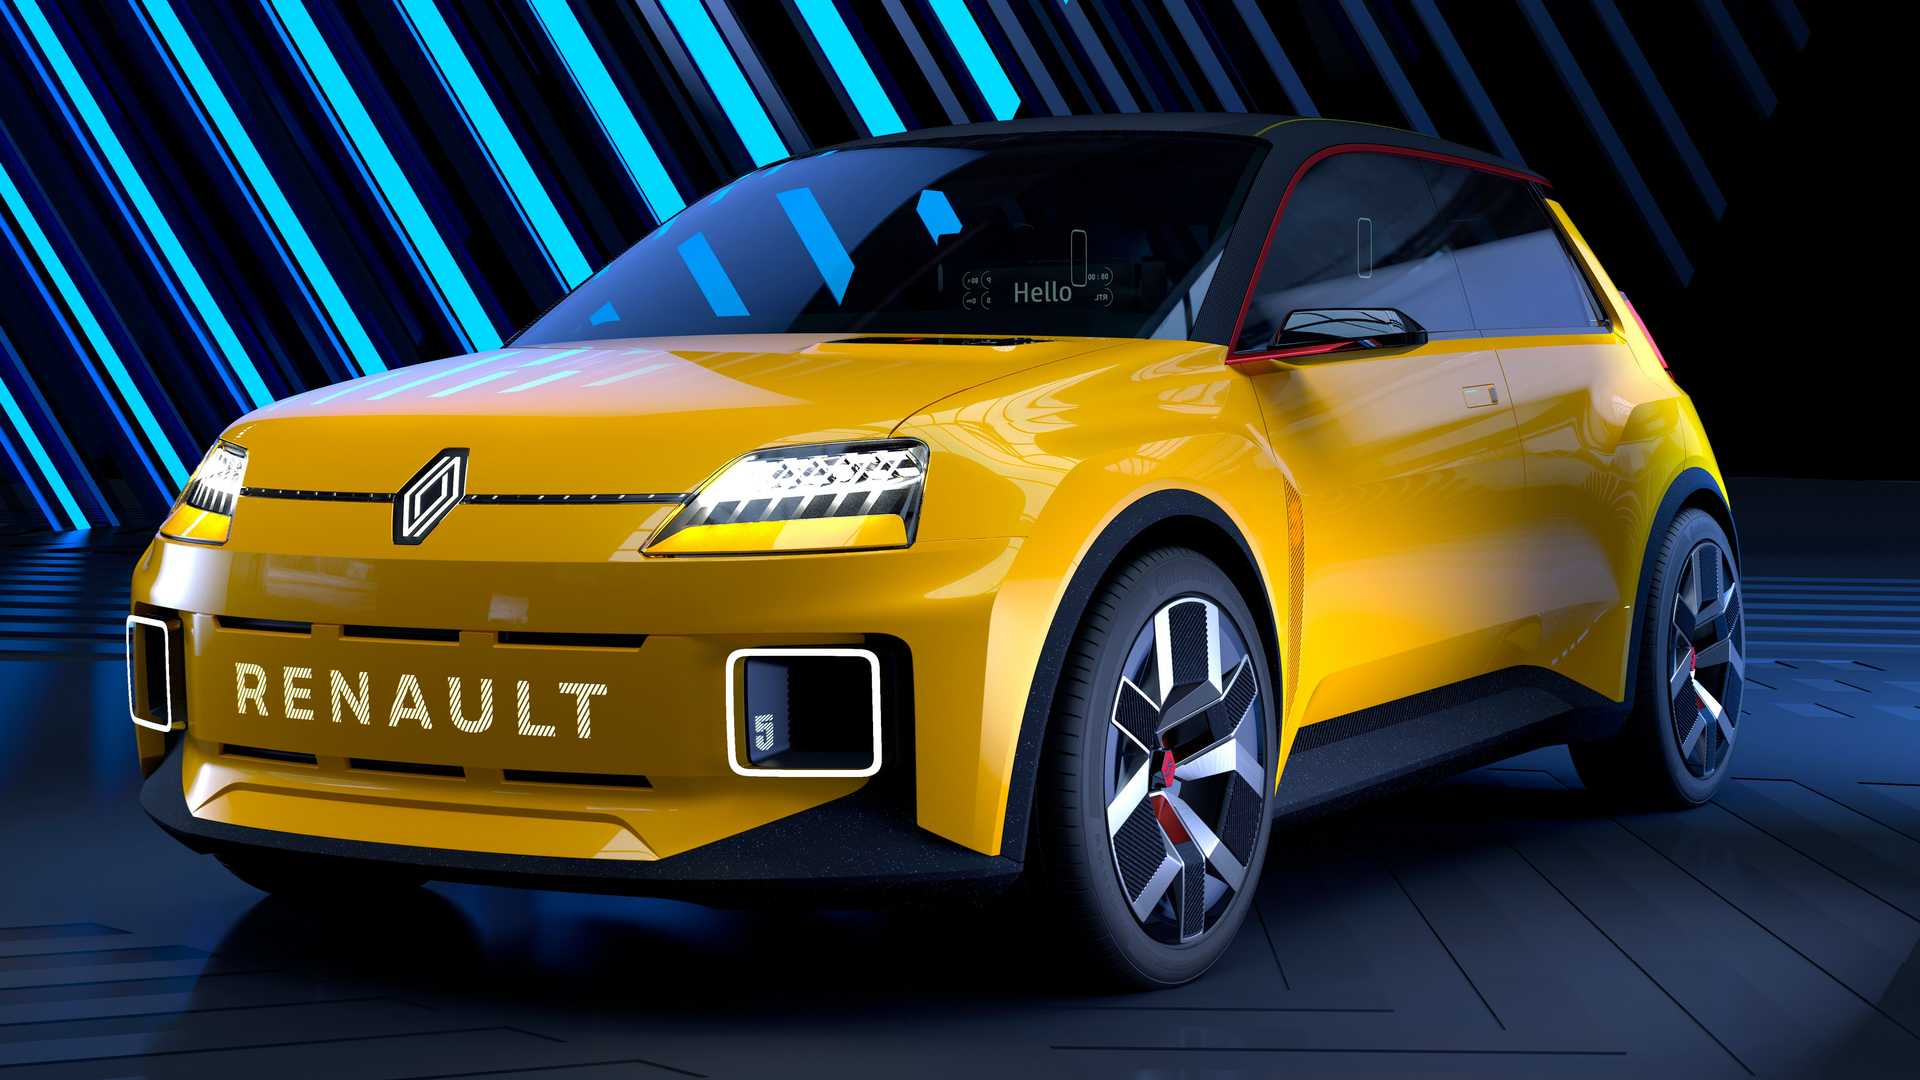 The French carmaker intends to launch at least seven fully electric cars until 2025, and the resurrected Renault 5 unveiled today will be one of them.